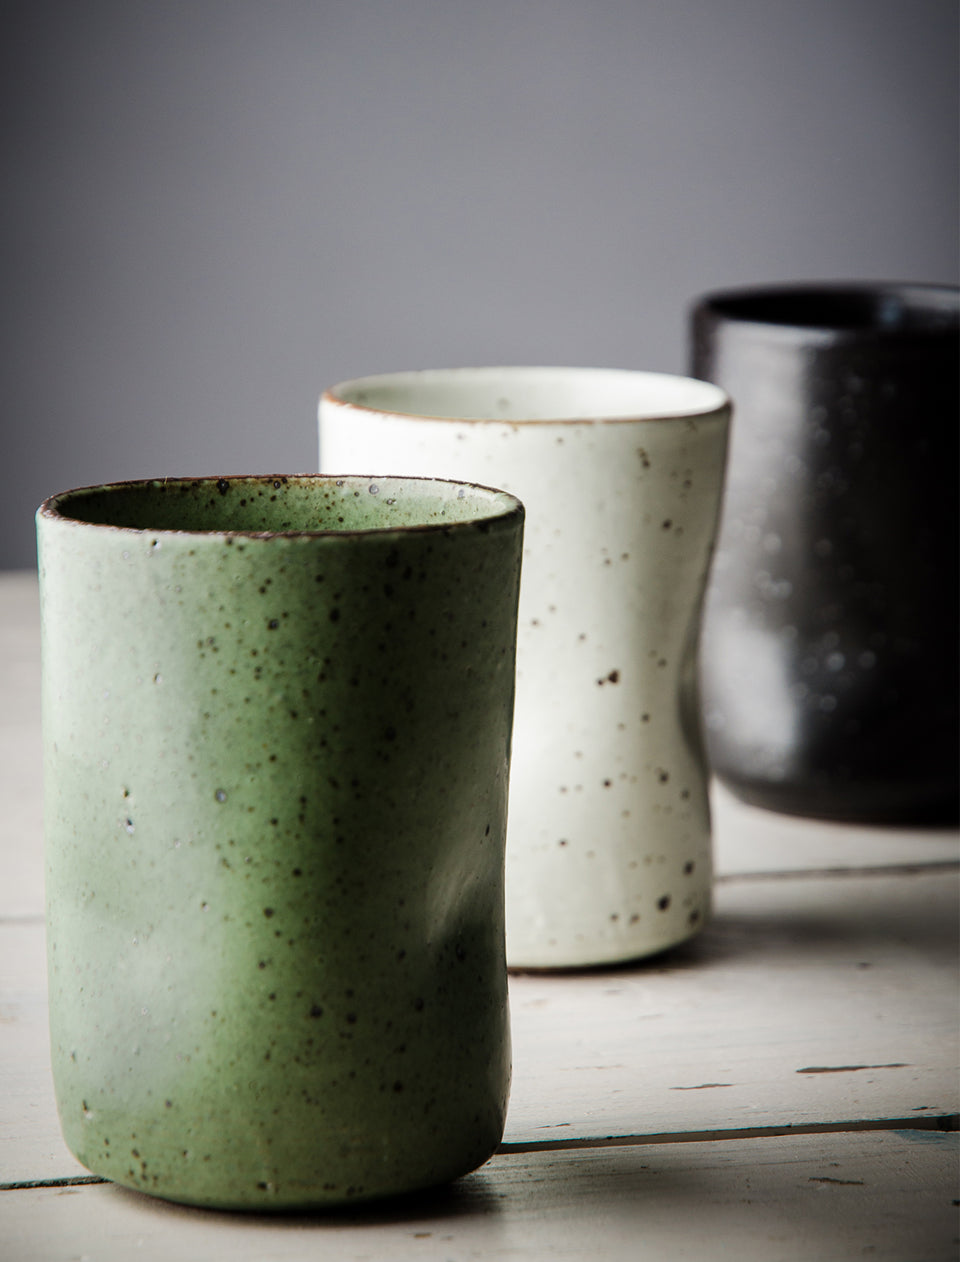 Cool handmade ceramic thumb shaped mugs.